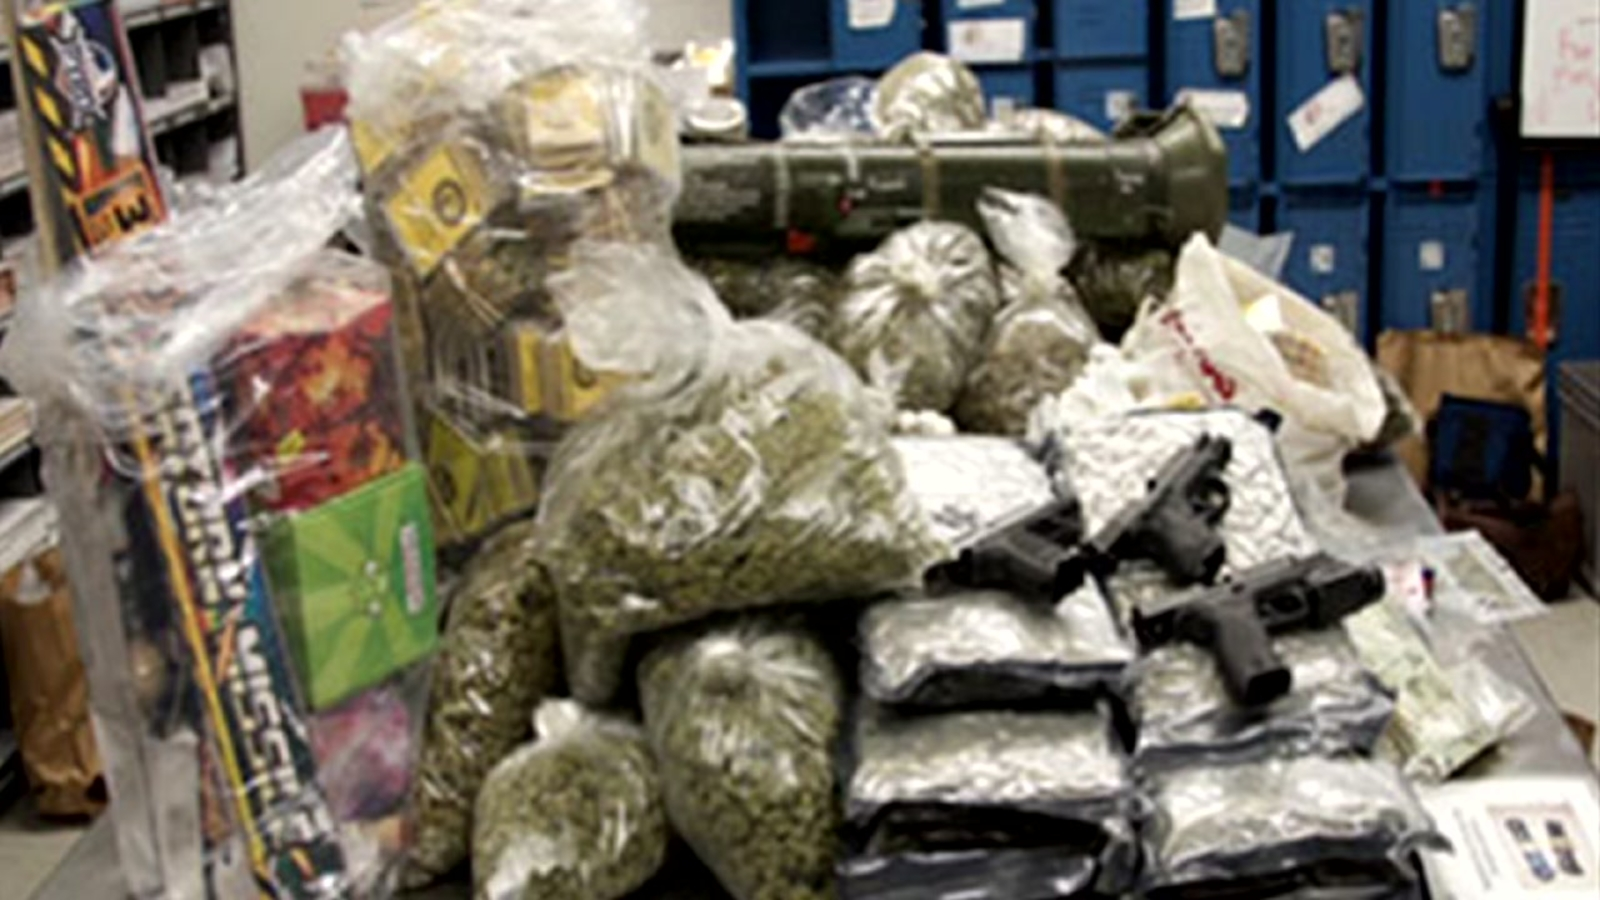 Rocket launcher, 800 pounds of pot seized in massive bust in San Jose